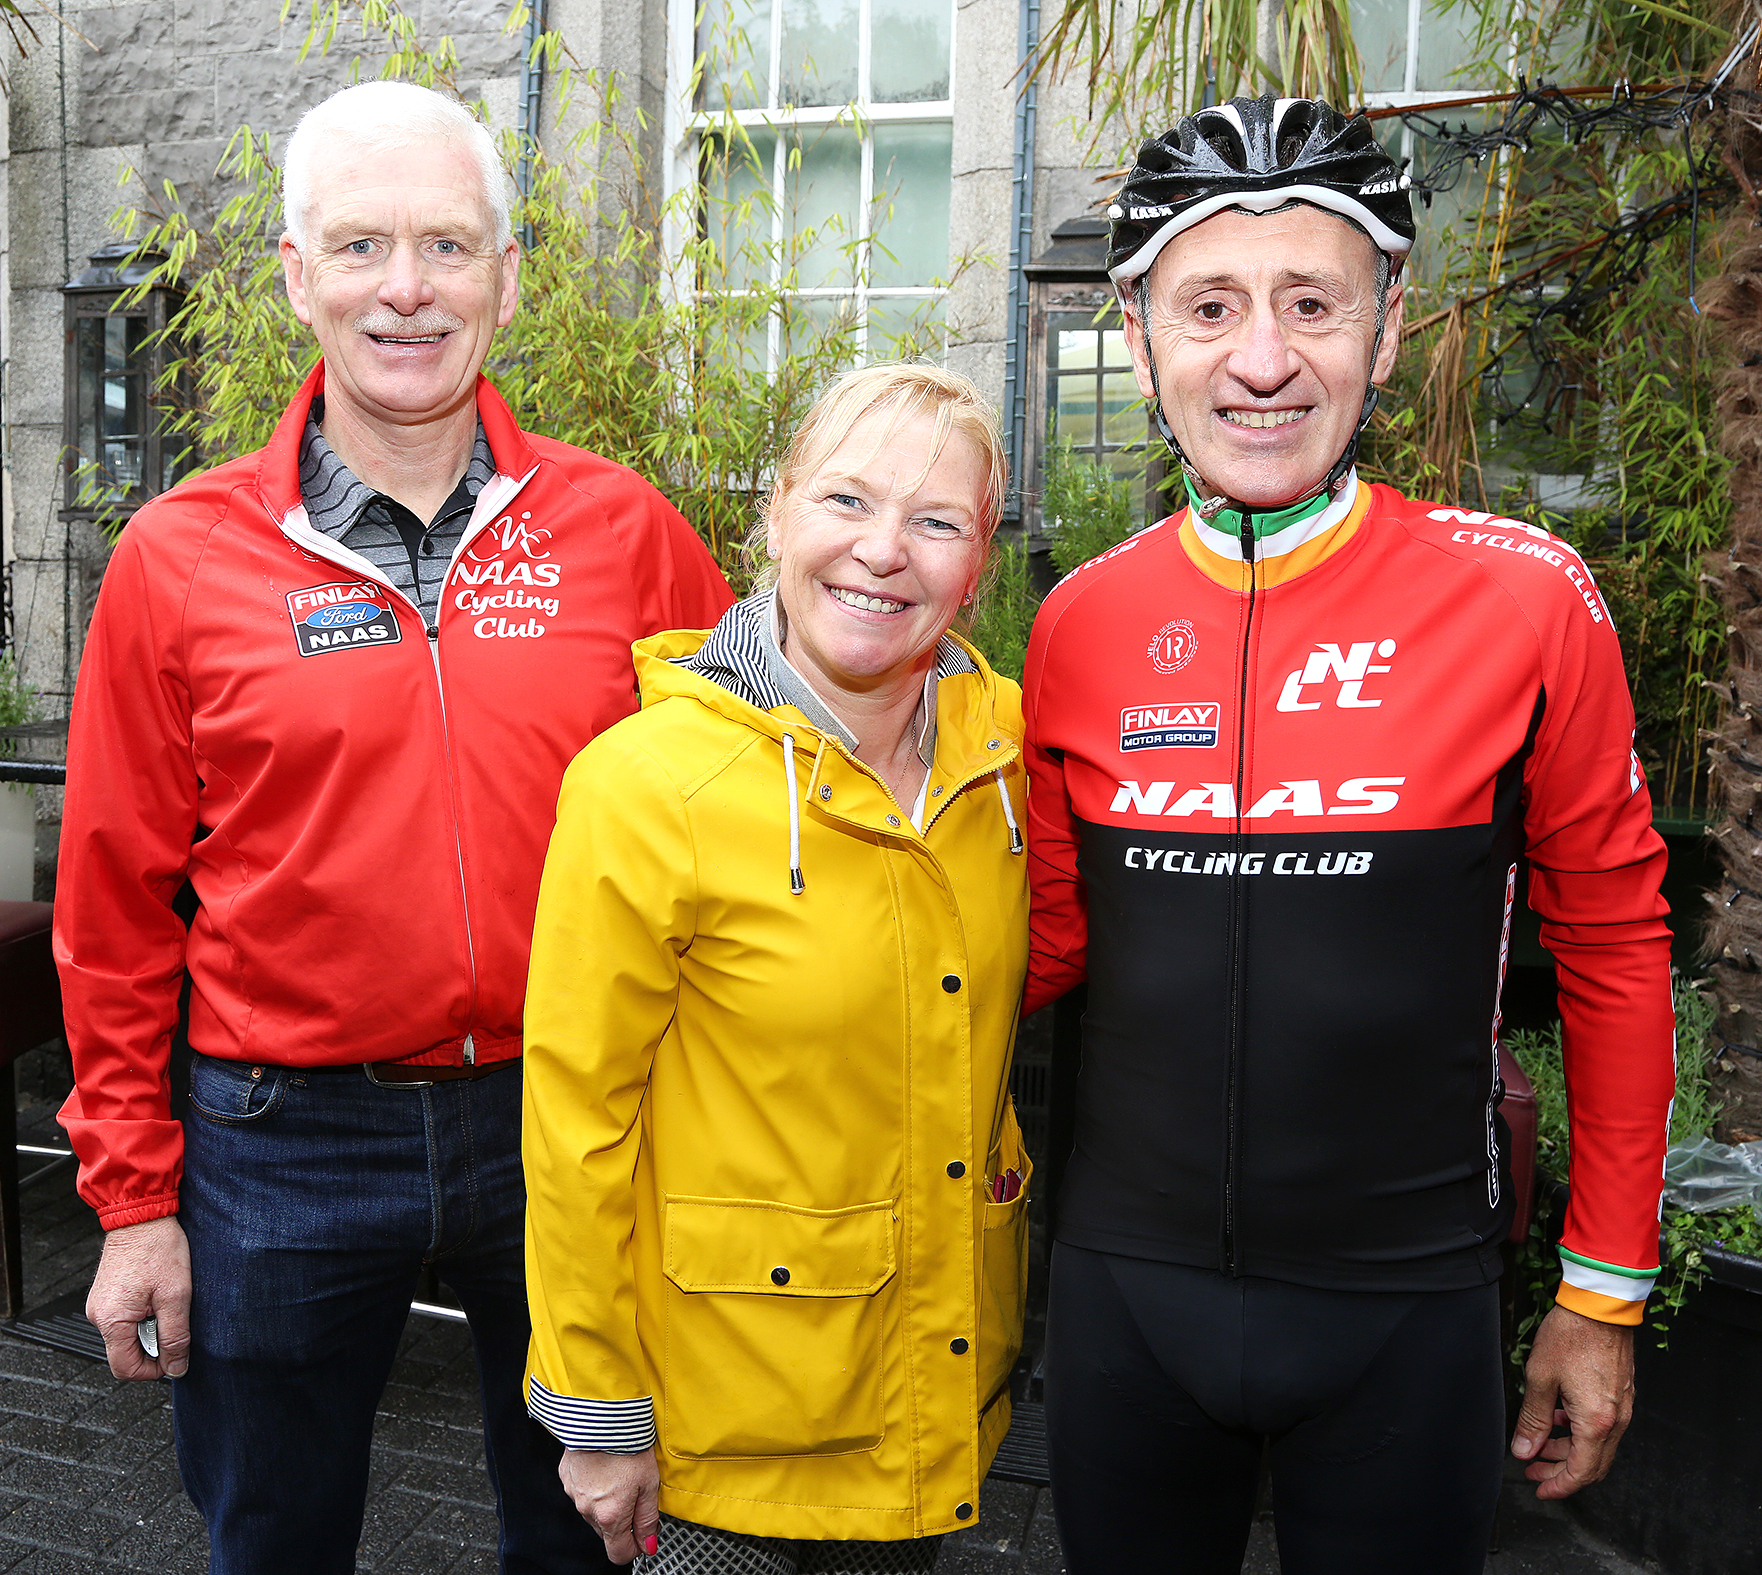 GALLERY: Martin Earley Tour of Kildare in aid of The Marie Keating